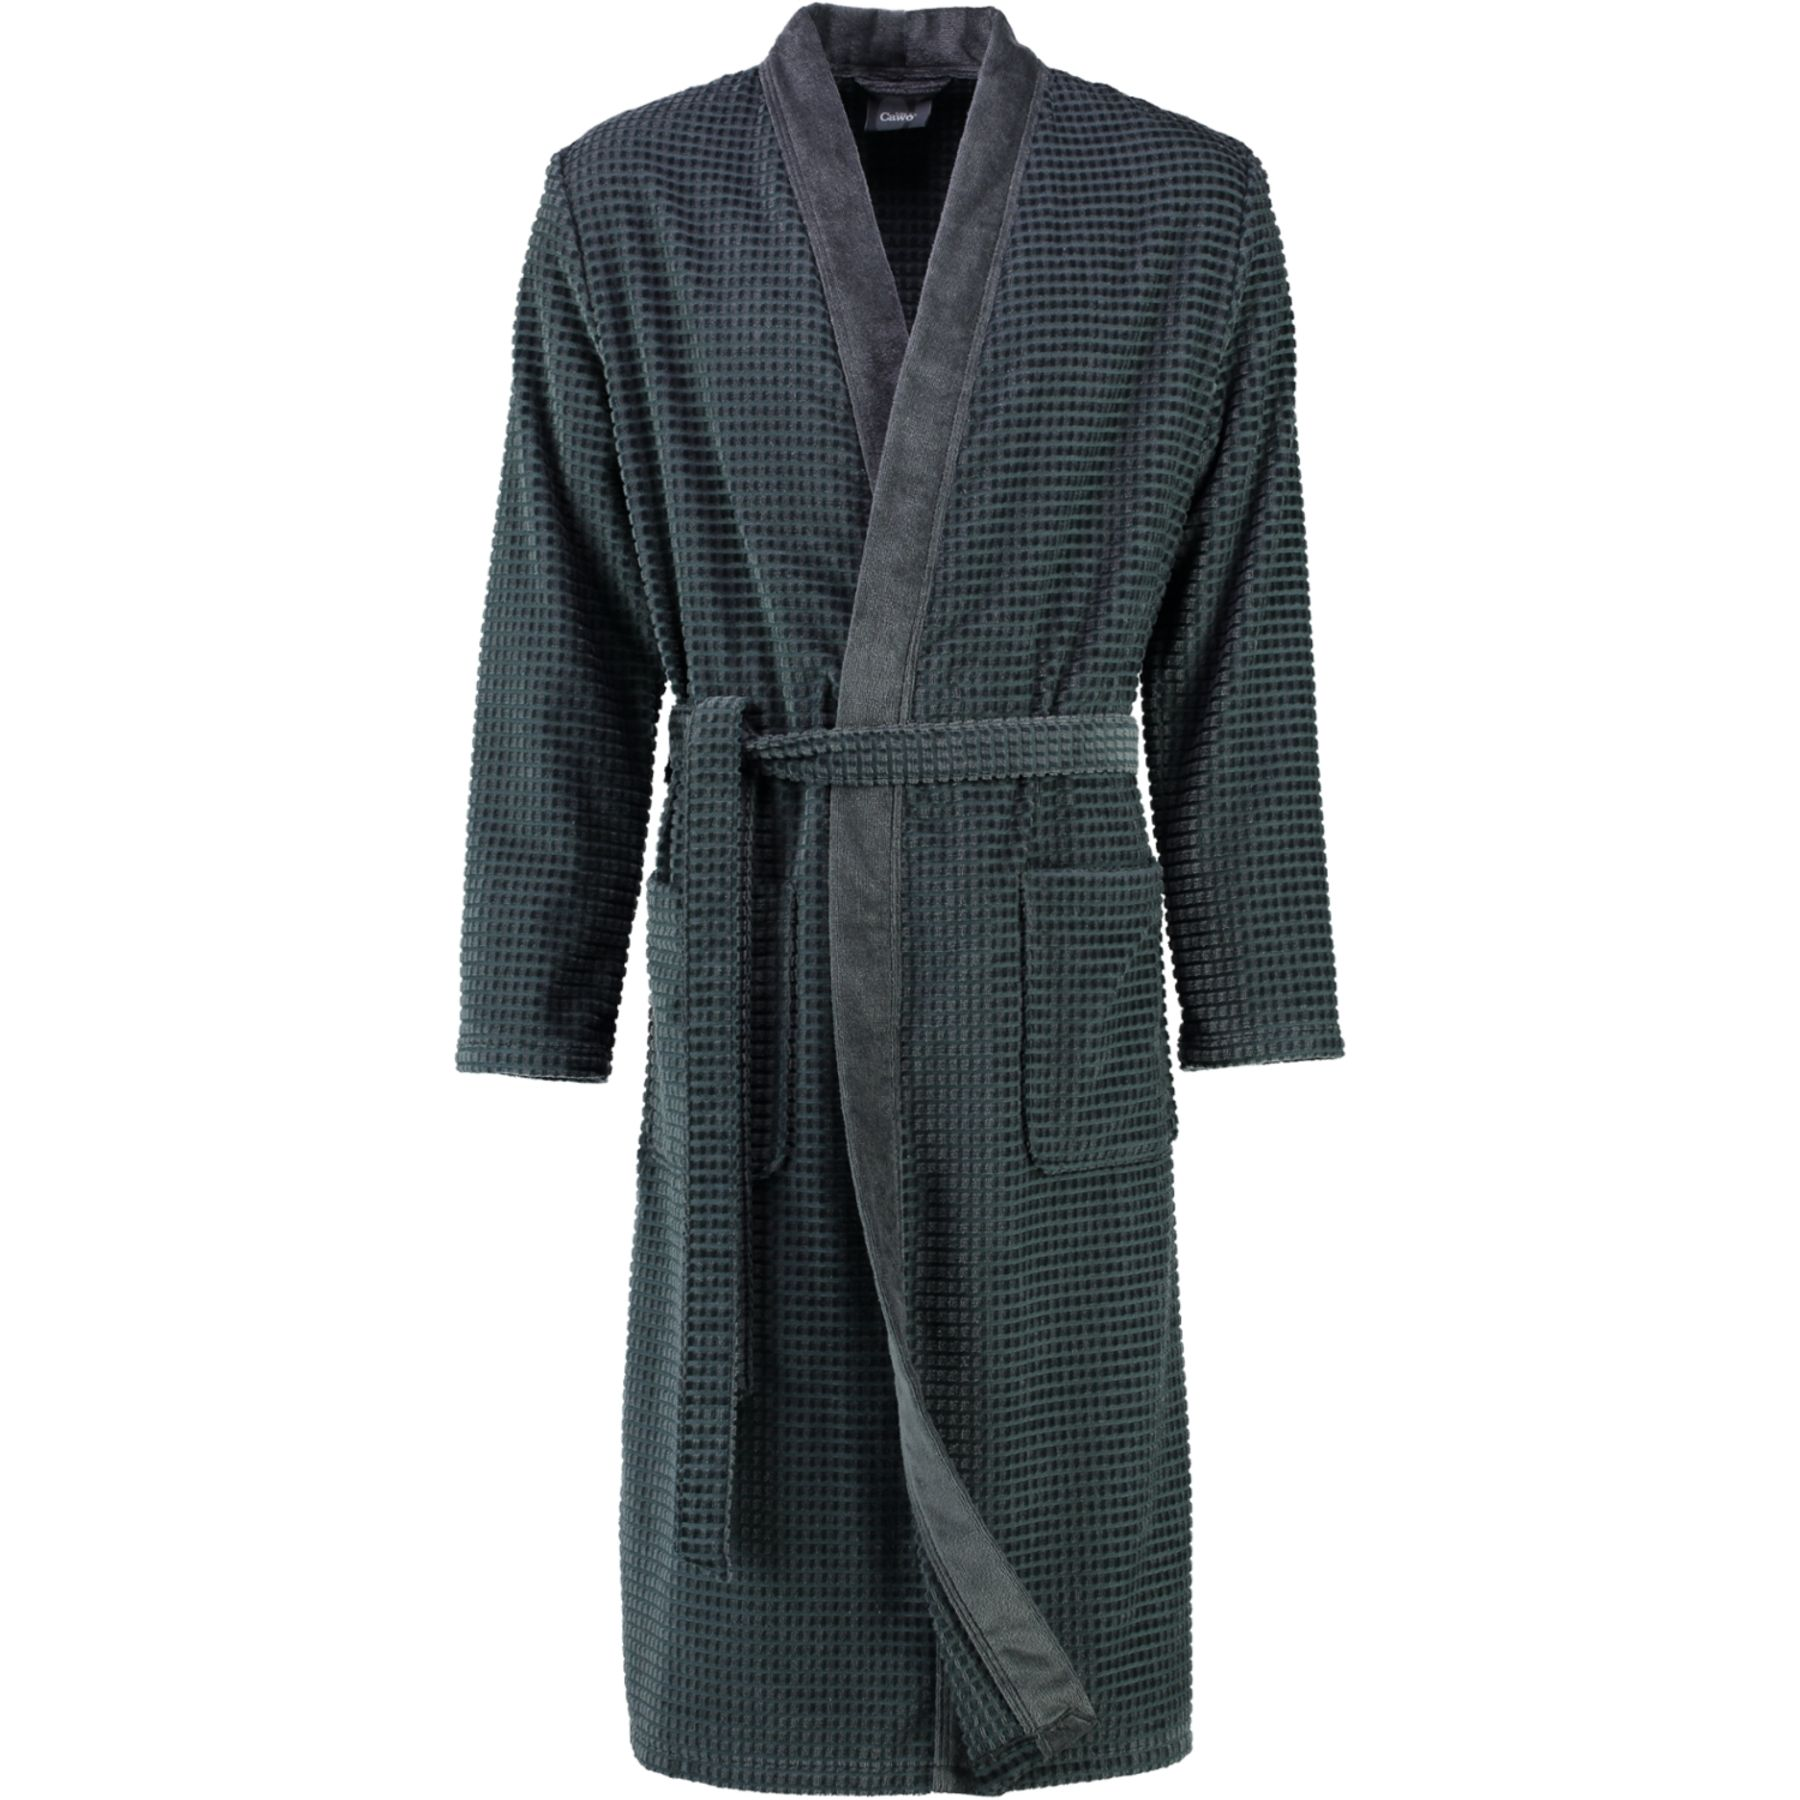 Cawö - Herren Walkvelours Bademantel in Kimono-Form (4843) – Bild 3